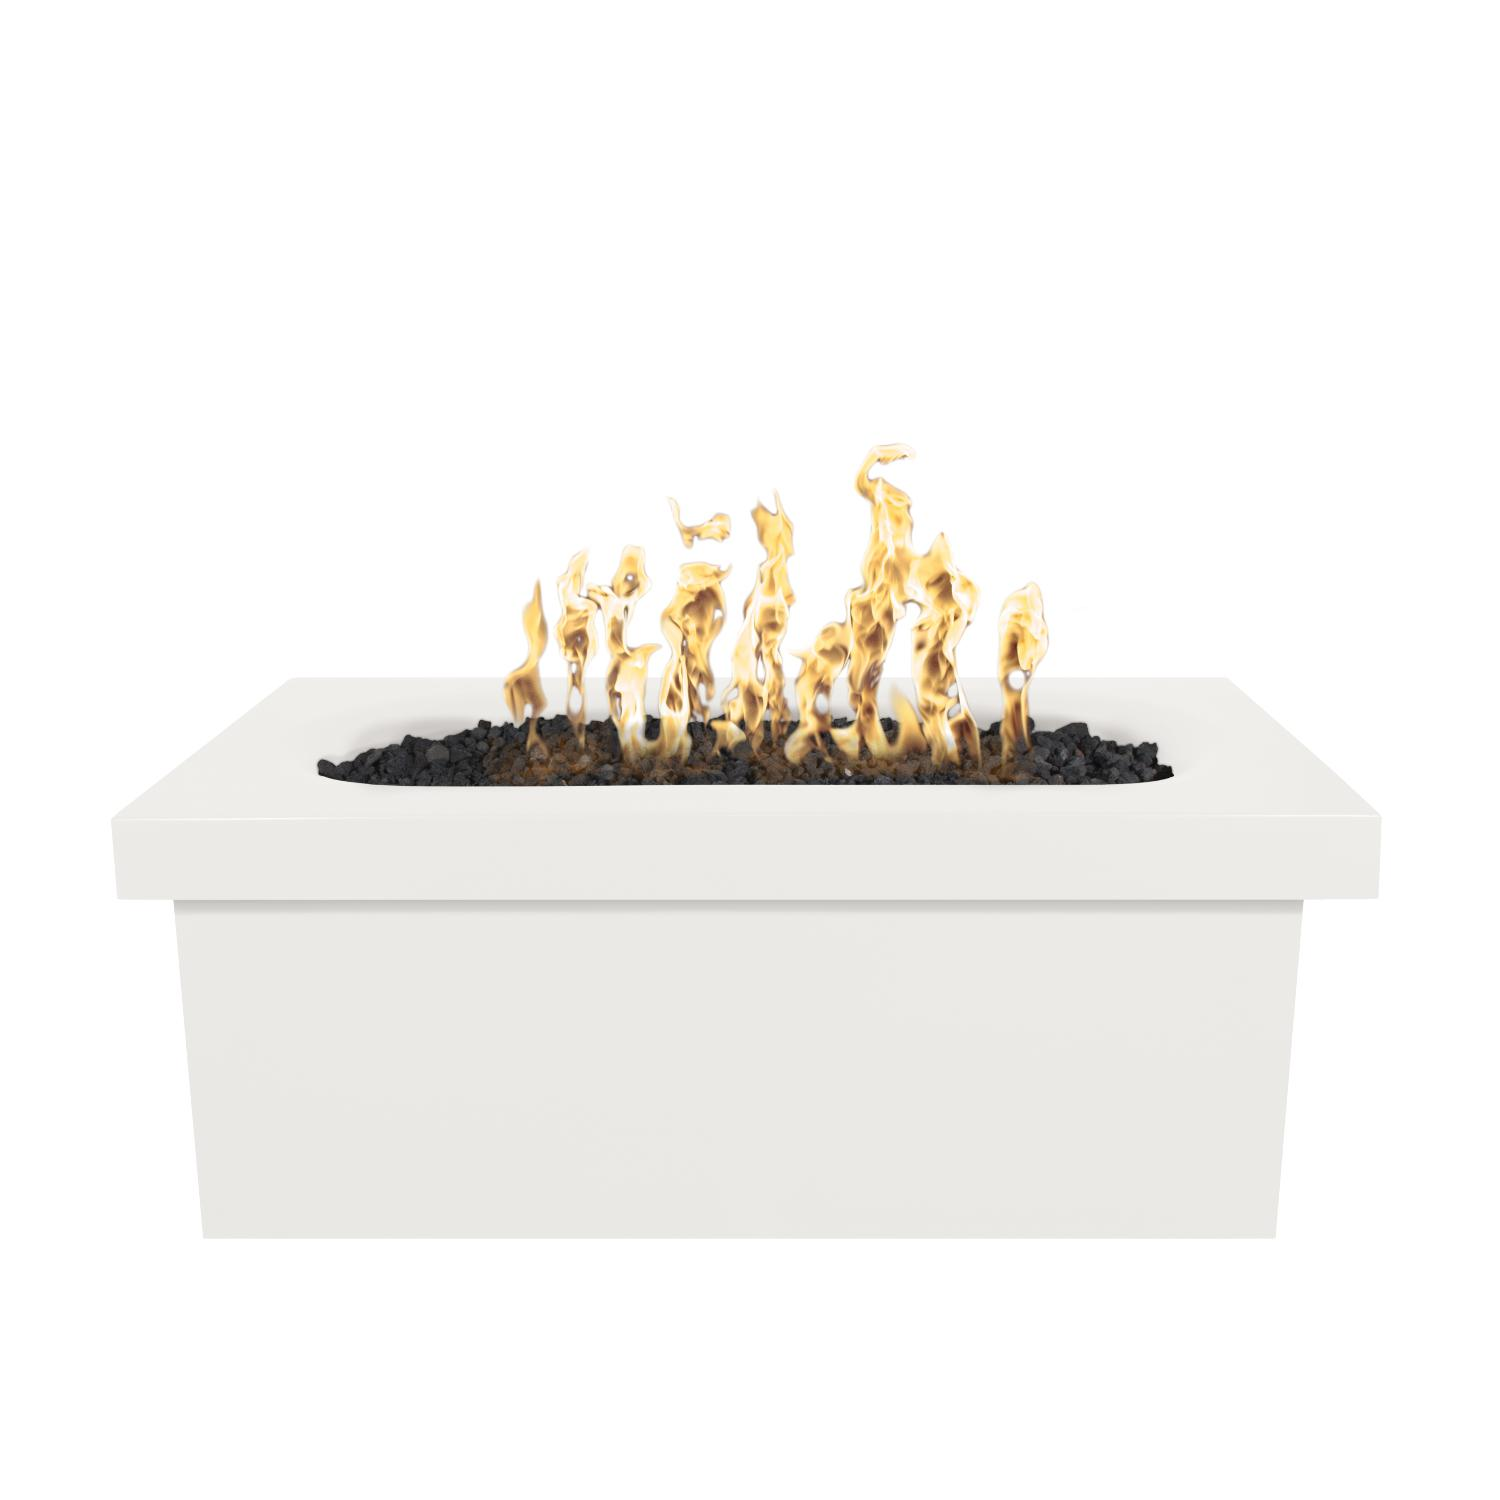 The Outdoor Plus Top Fires by Ramona 60 Propane Fire Table - Limestone Concrete - Match Light - OPT-RMNRT60-LIM-LP